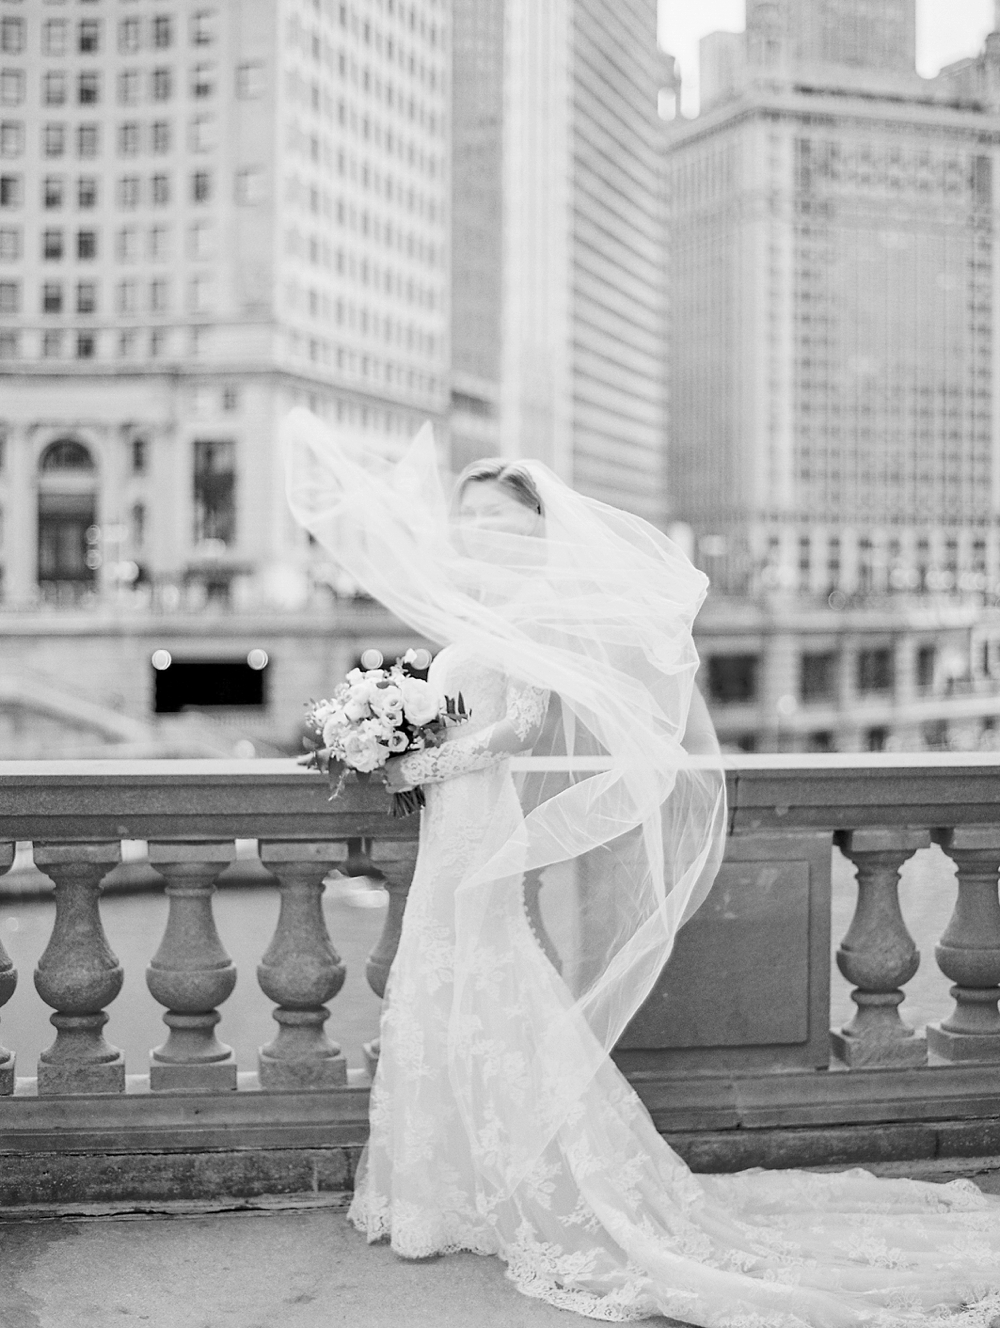 Kristin-La-Voie-Photography-Chicago-Wedding-7